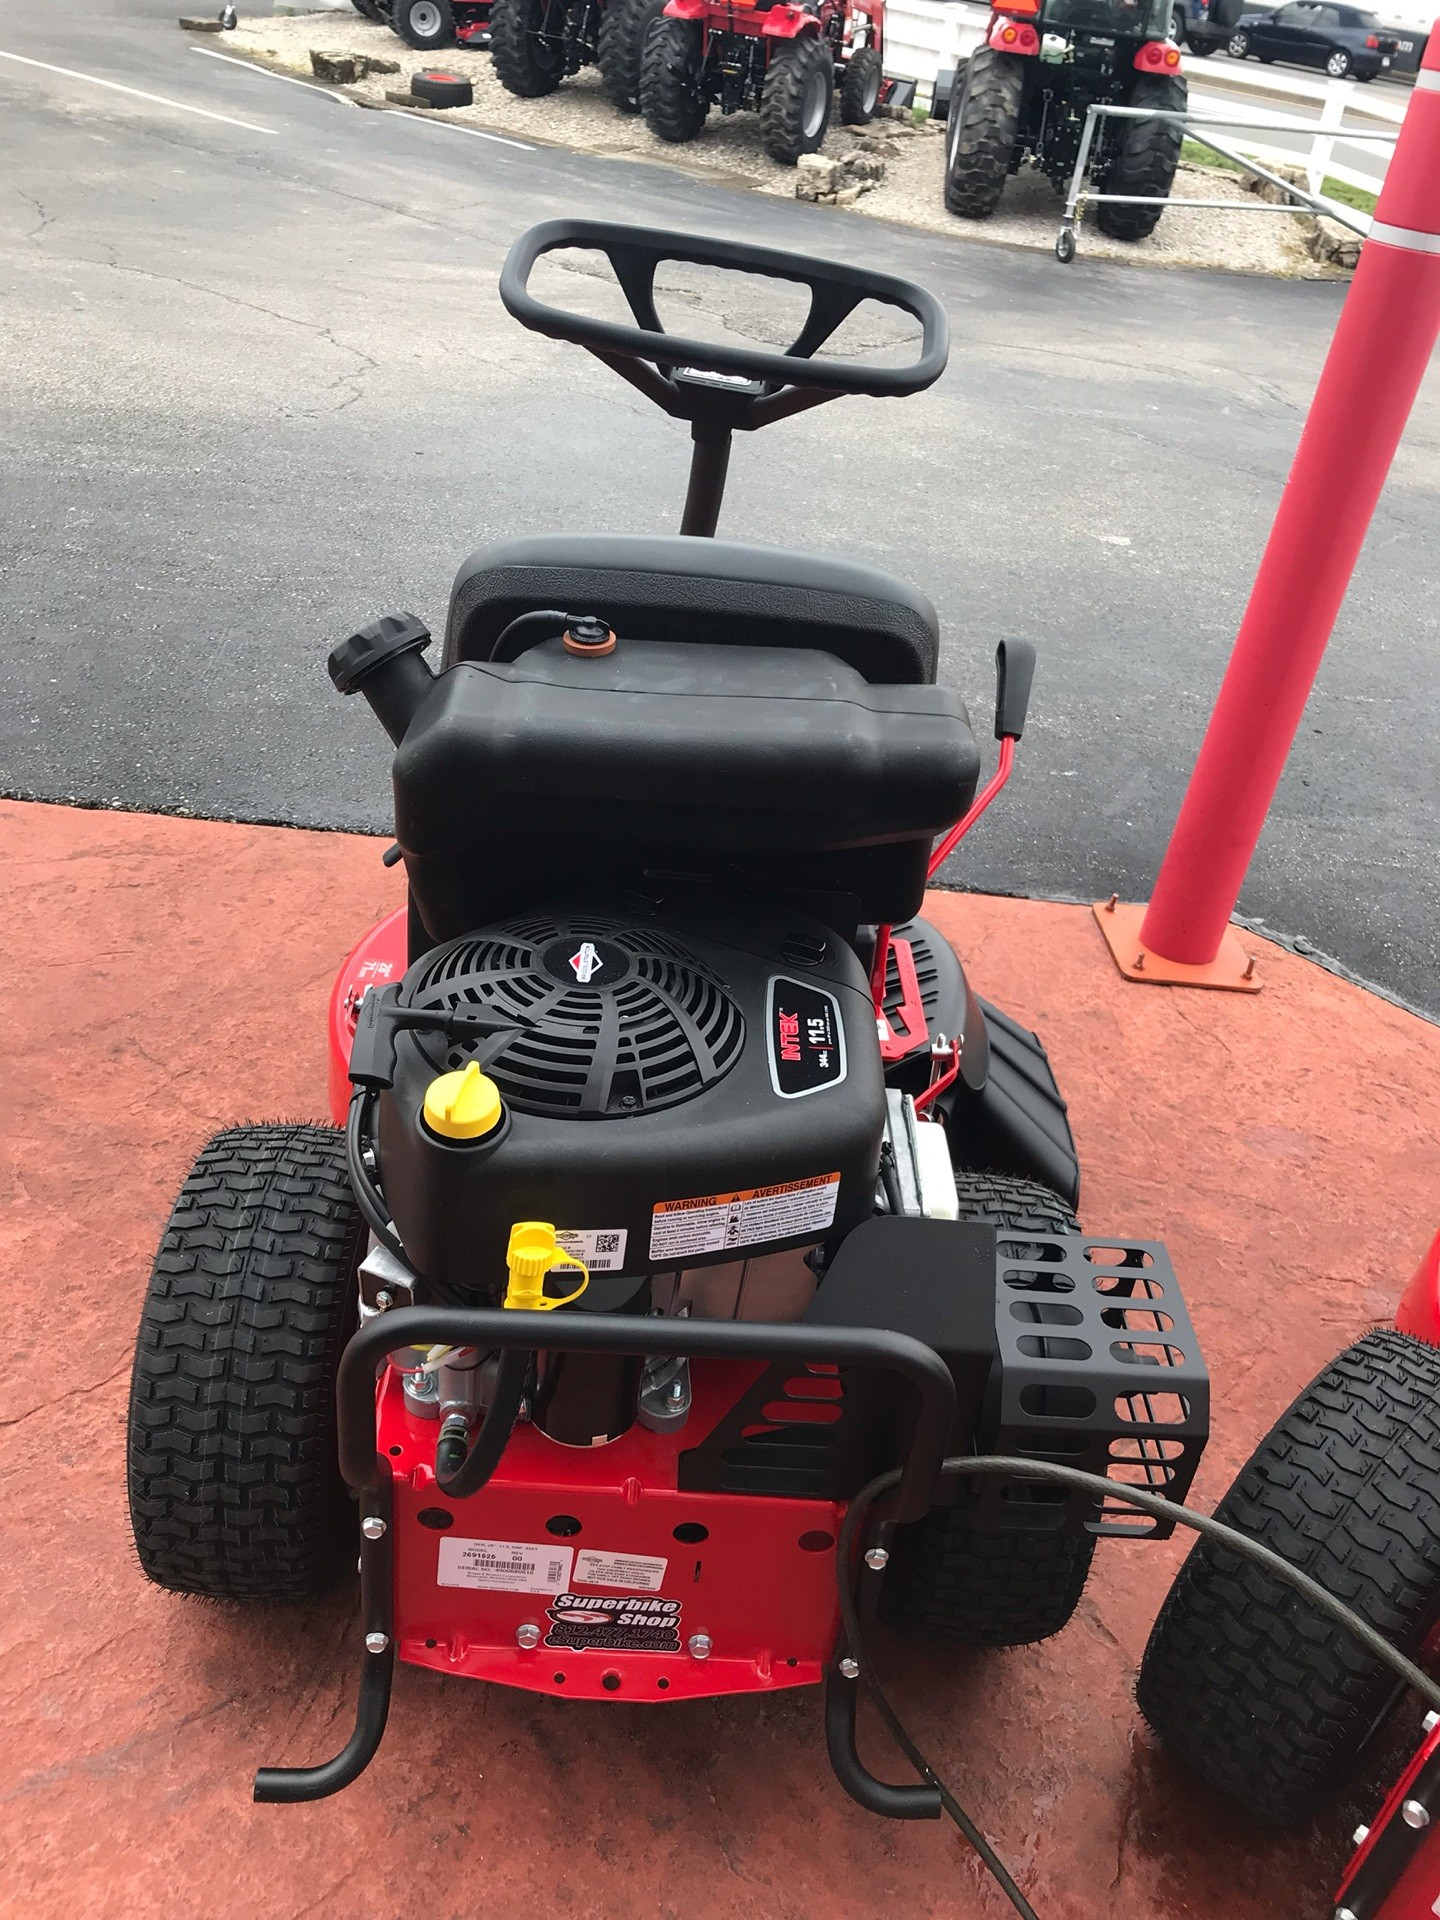 2019 Snapper Classic Rear Engine Riding Lawn Mower in Evansville, Indiana - Photo 4